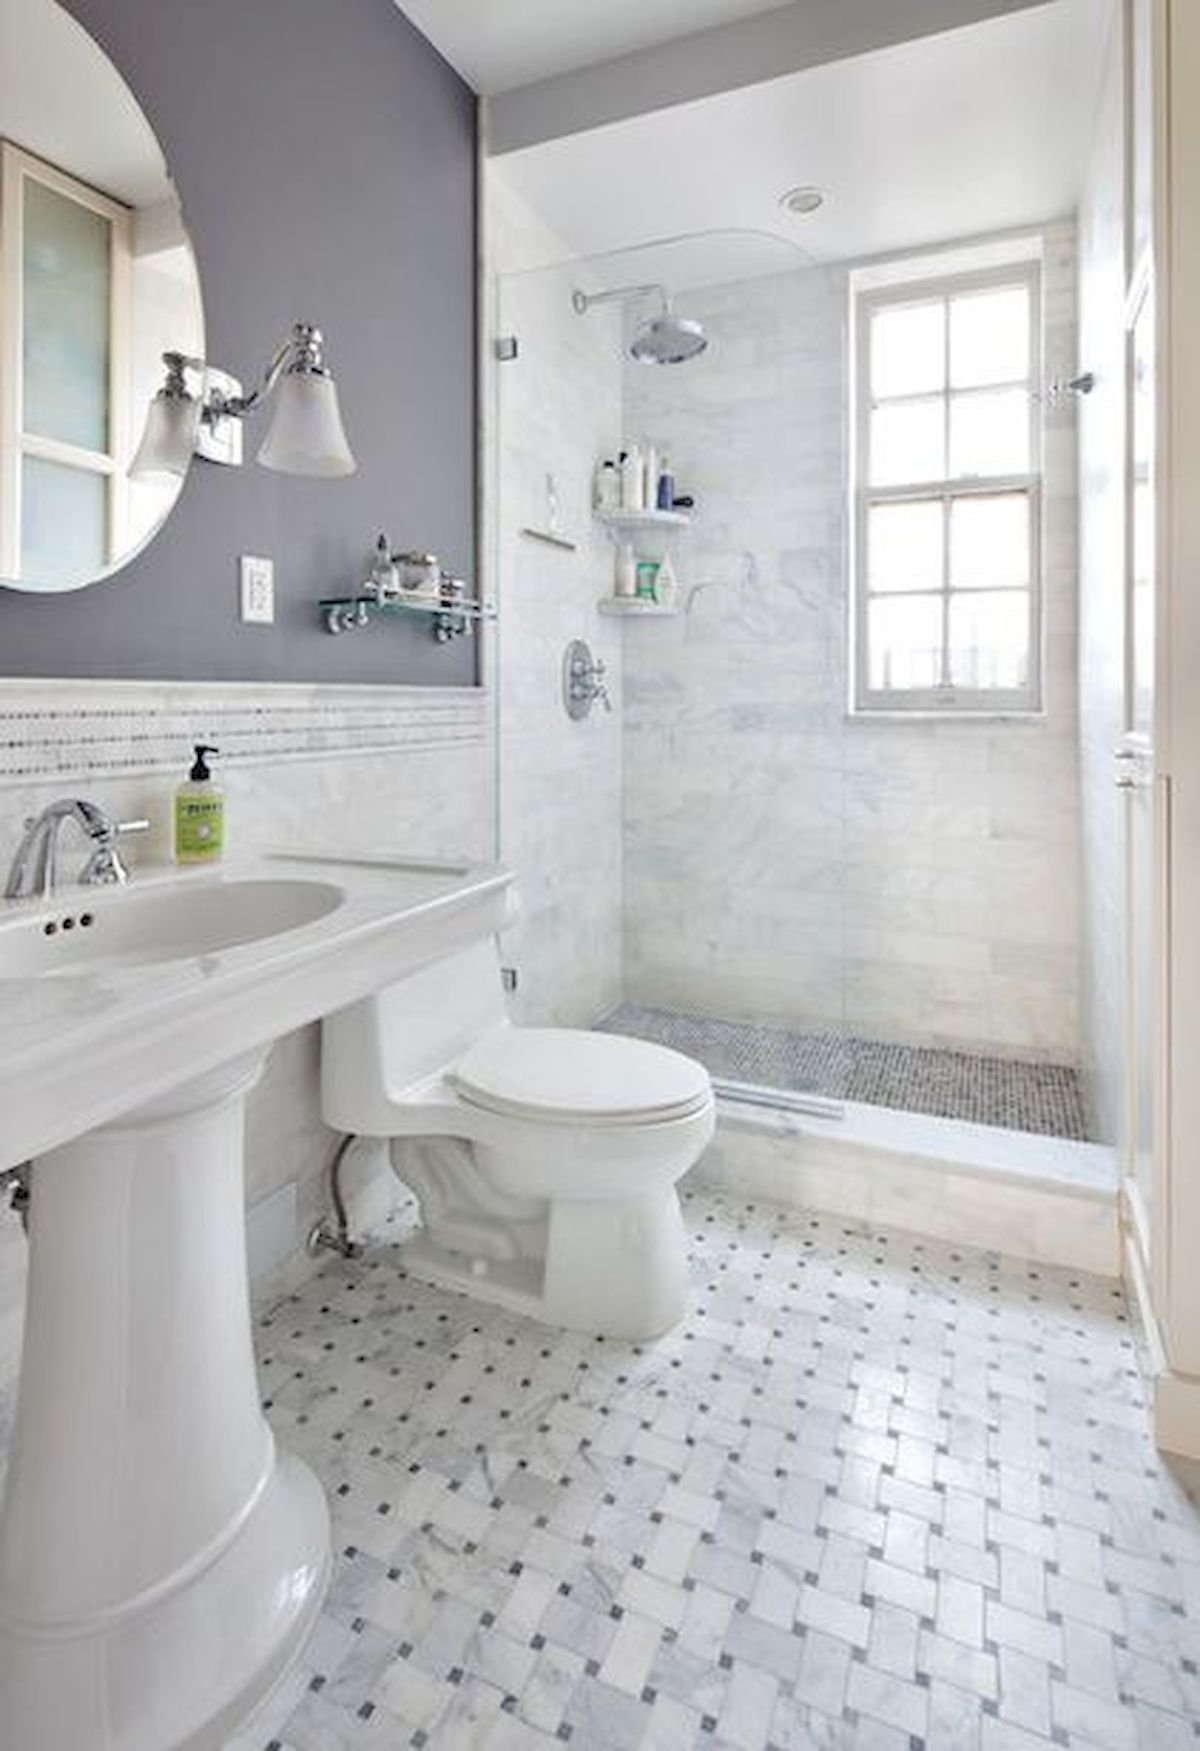 Nice 60 Elegant Small Master Bathroom Remodel Ideas Https Livingmarch Com 60 Elegant Small M Bathrooms Remodel Small Bathroom Remodel Bathroom Remodel Master